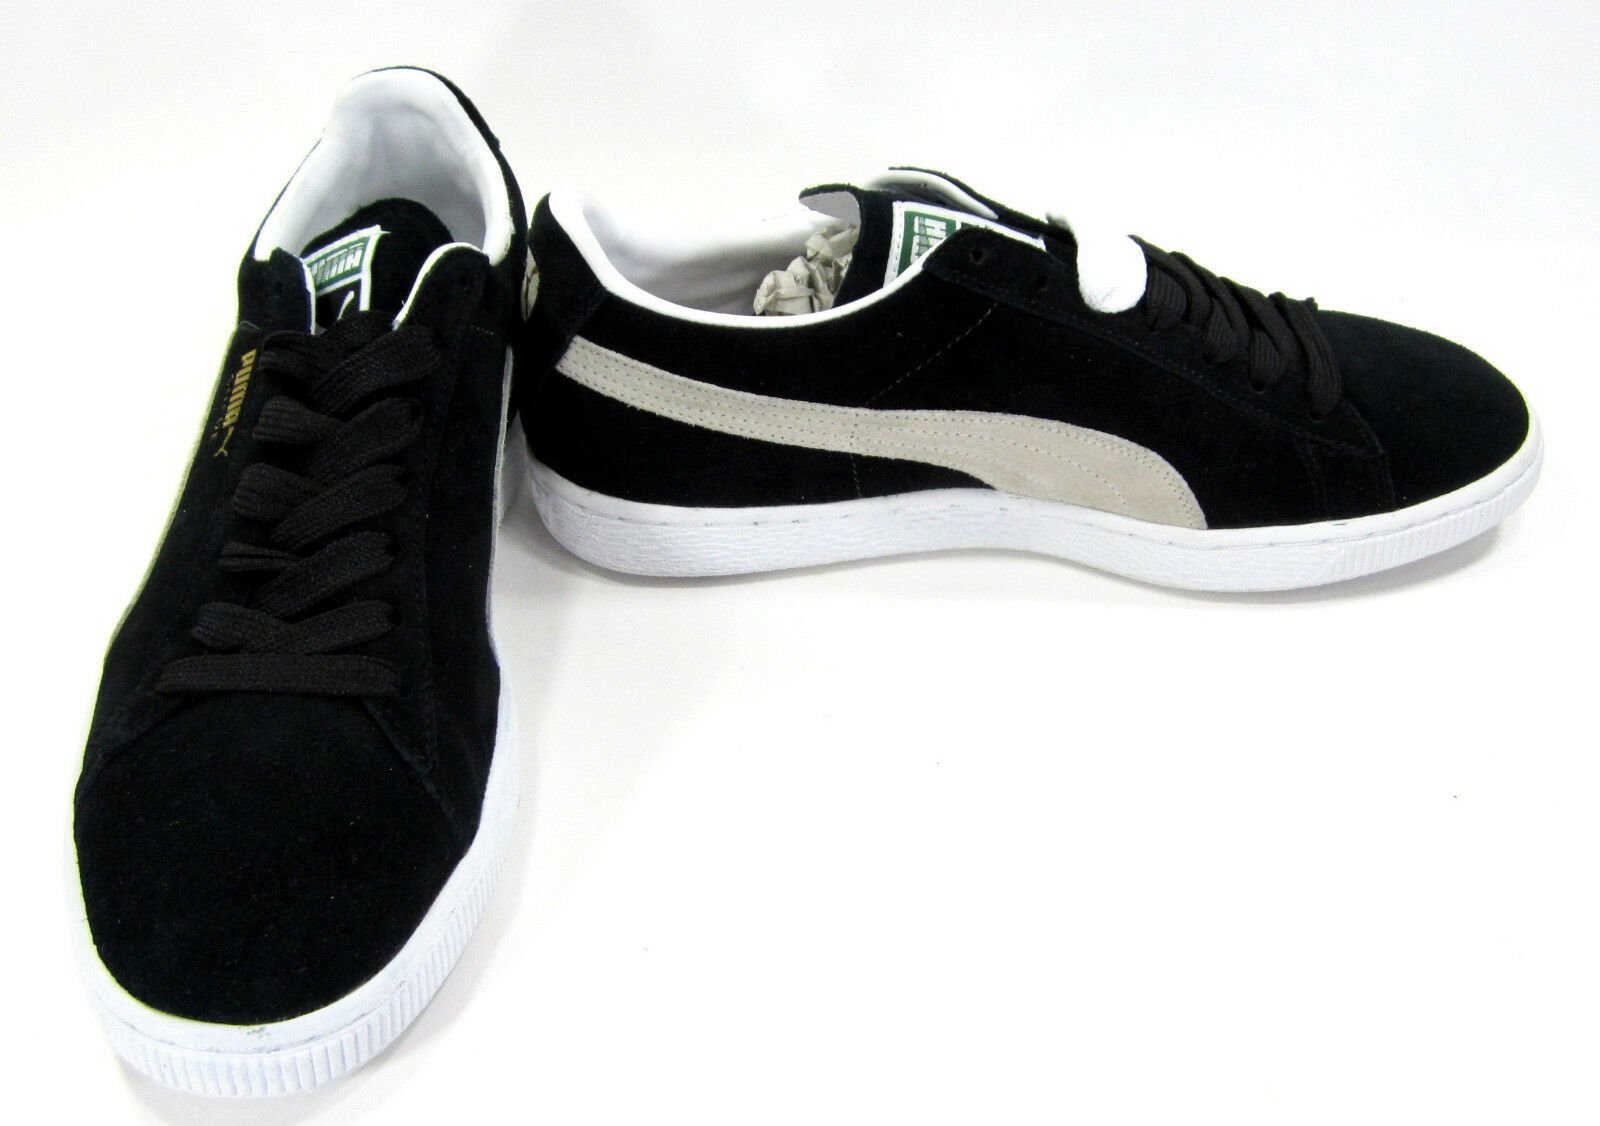 Puma shoes Suede Classic + Black White Sneakers Size 8.5